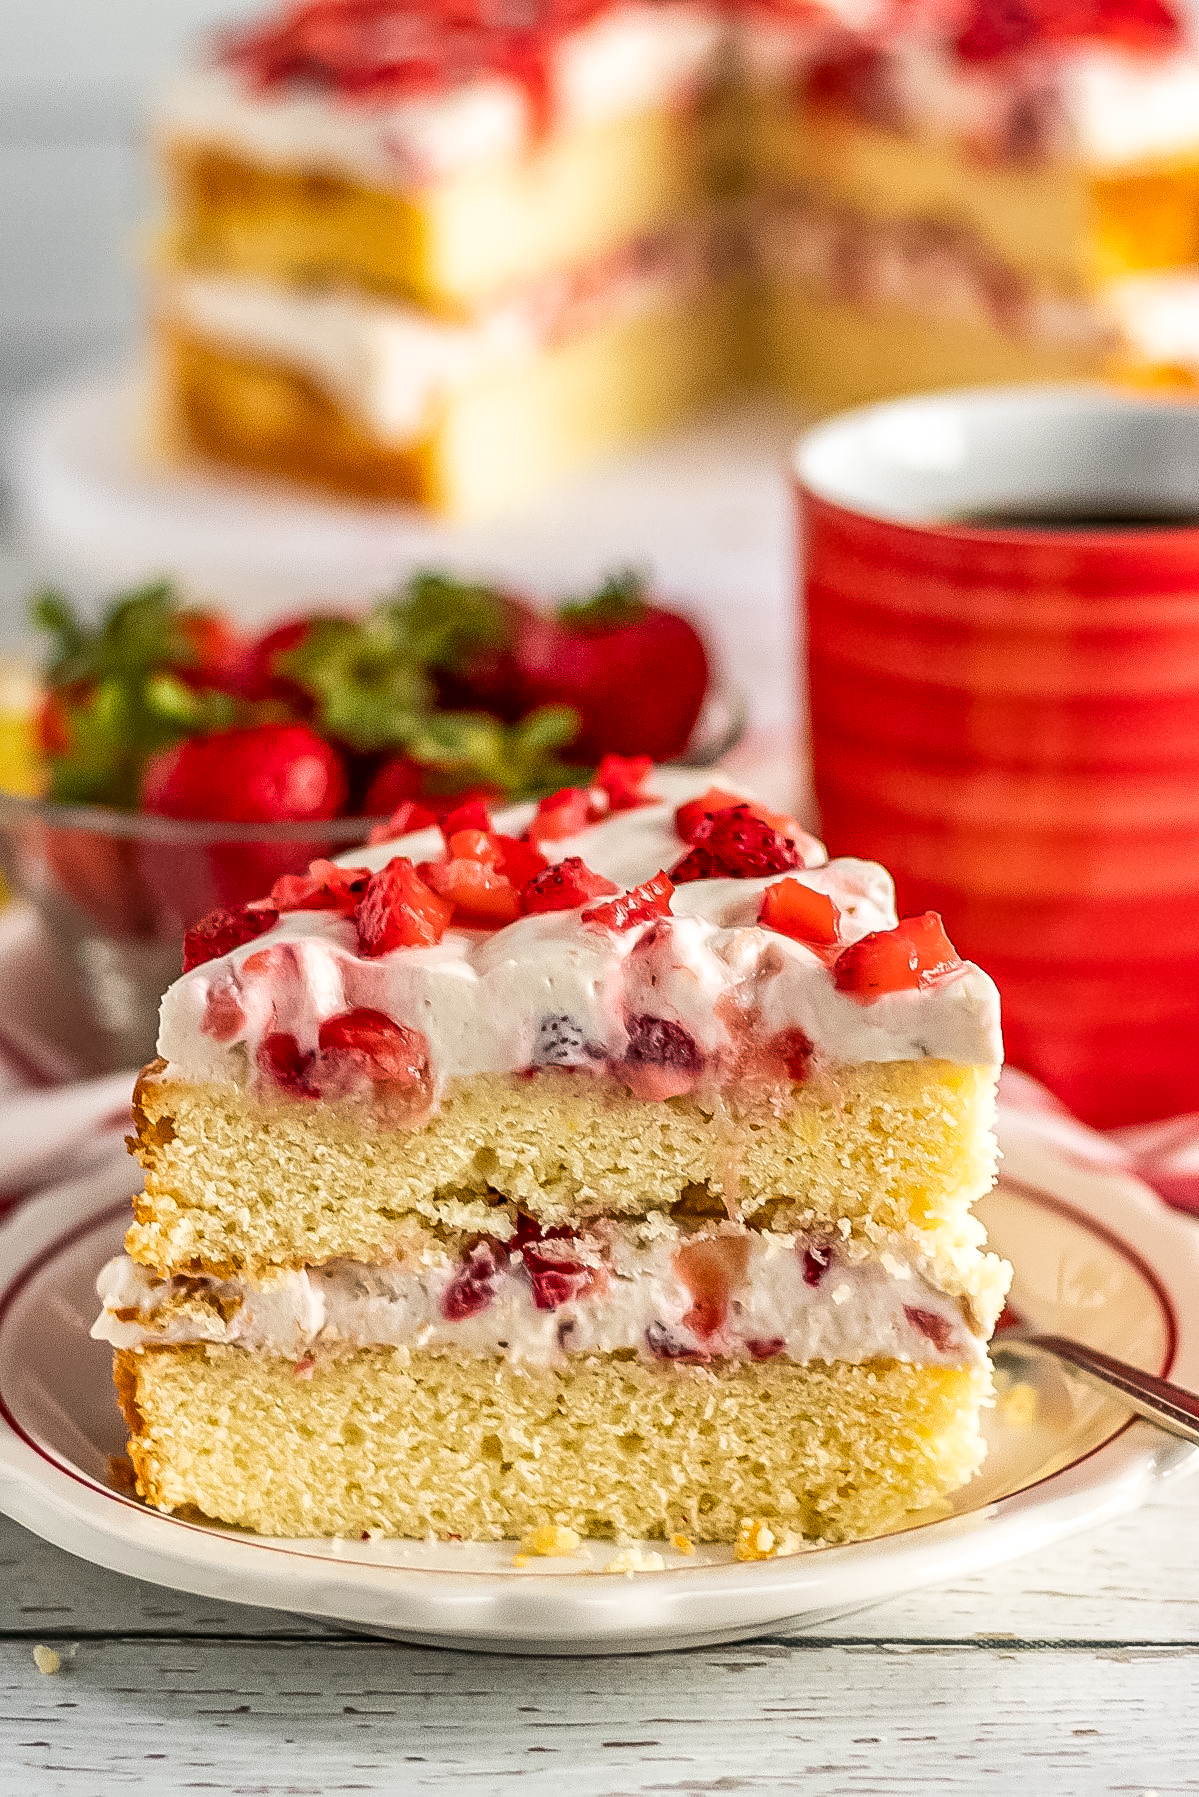 An, easy recipe for a strawberry banana layer cake with layers of creamy whipped cream frosting made with fresh bananas and strawberries.